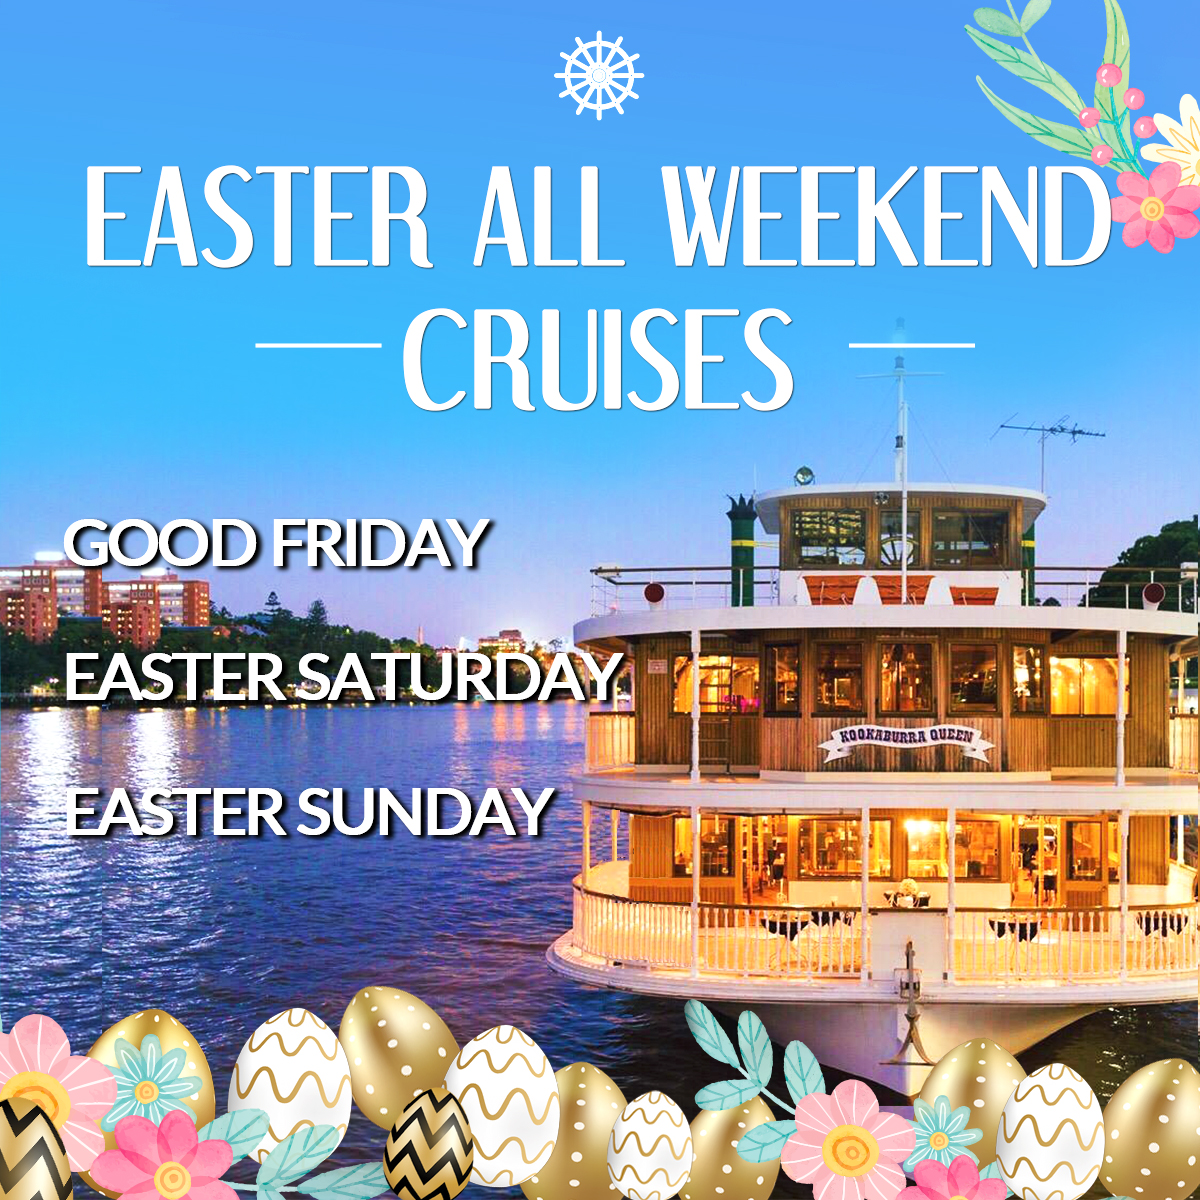 zzz Easter Weekend Dinner Cruises (Good Friday,  Easter Saturday, Easter Sunday)